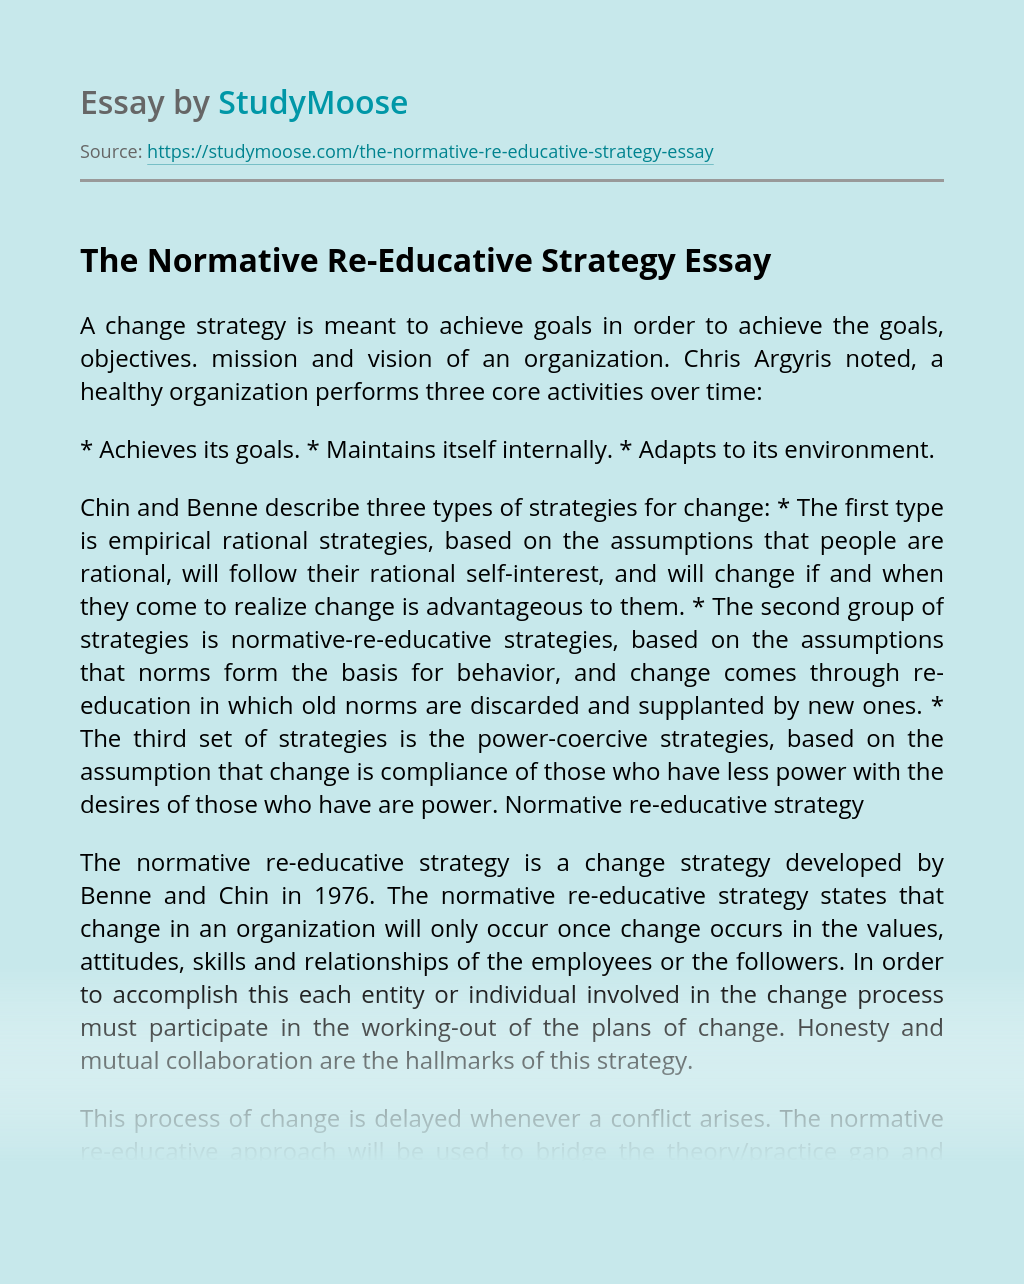 The Normative Re-Educative Strategy